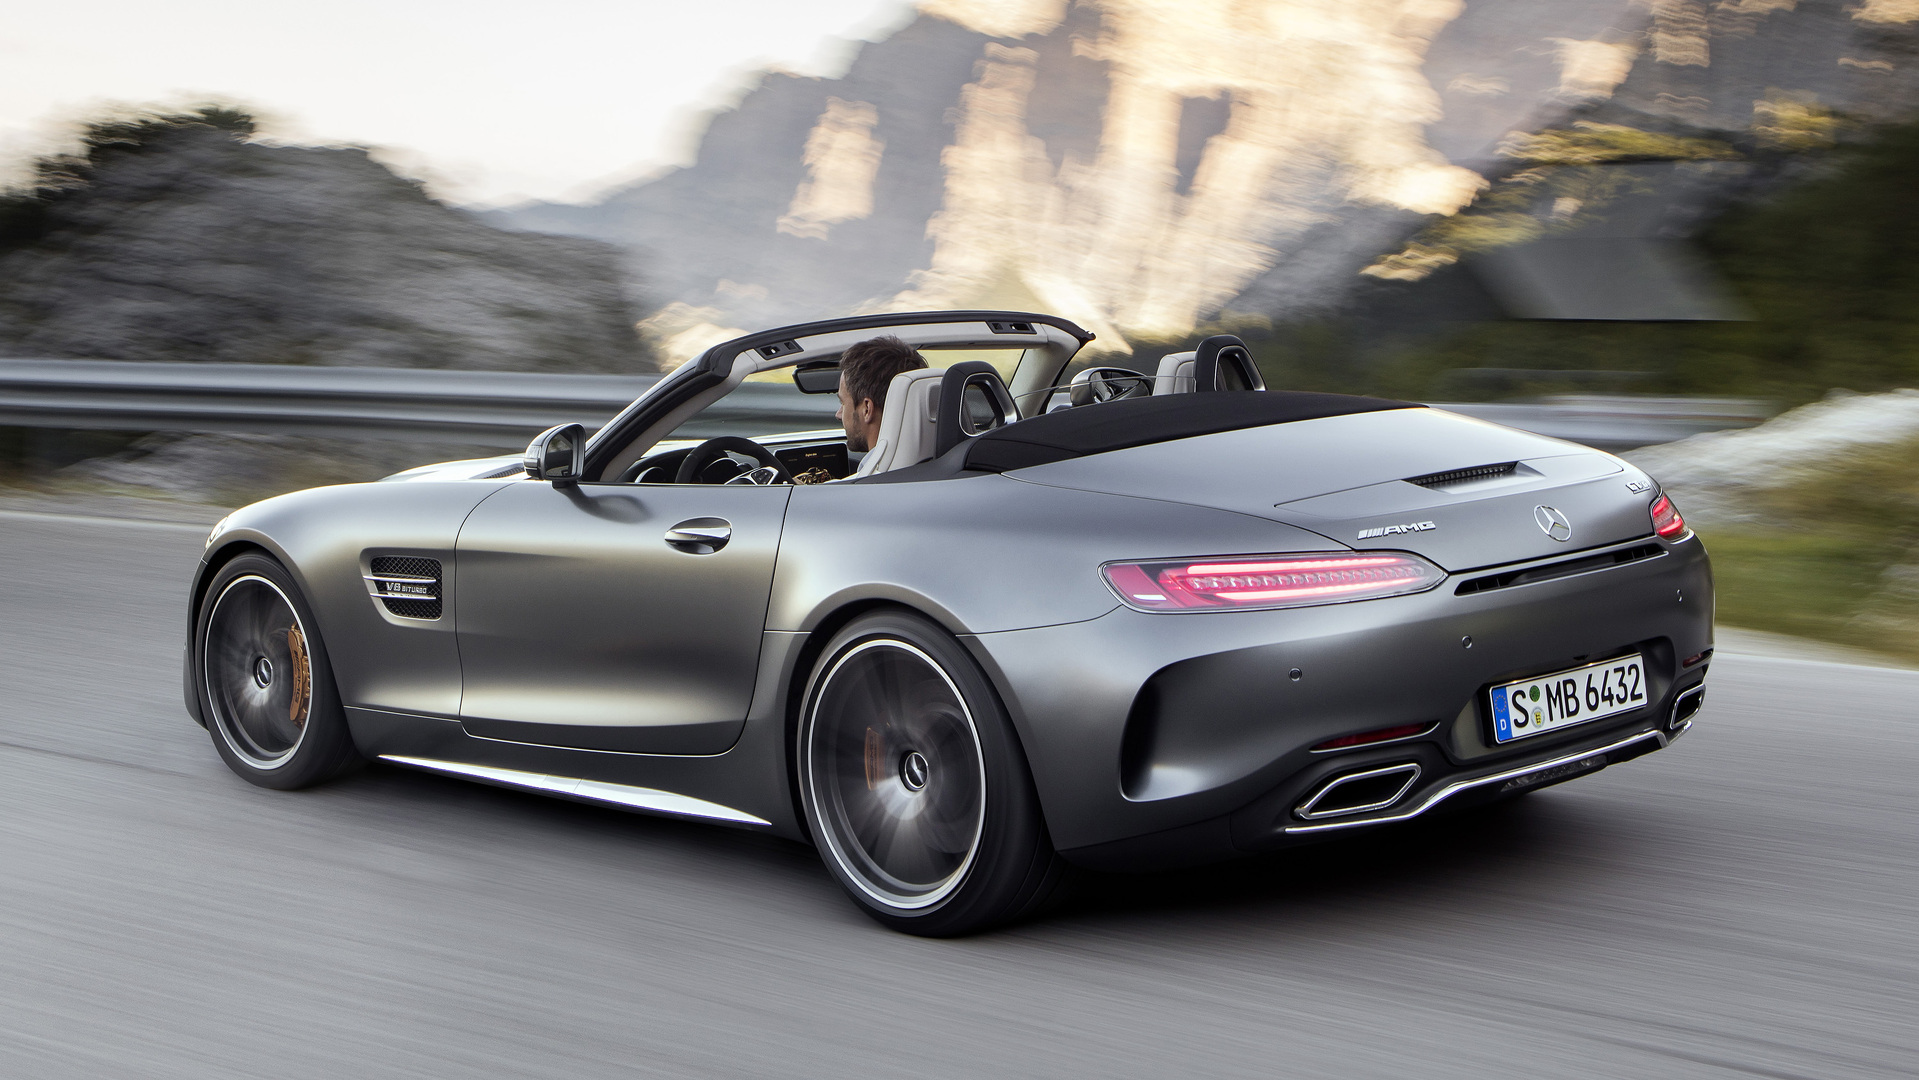 Amg Gt Roadster >> Mercedes Benz Amg Gt Roadster News And Reviews Motor1 Com